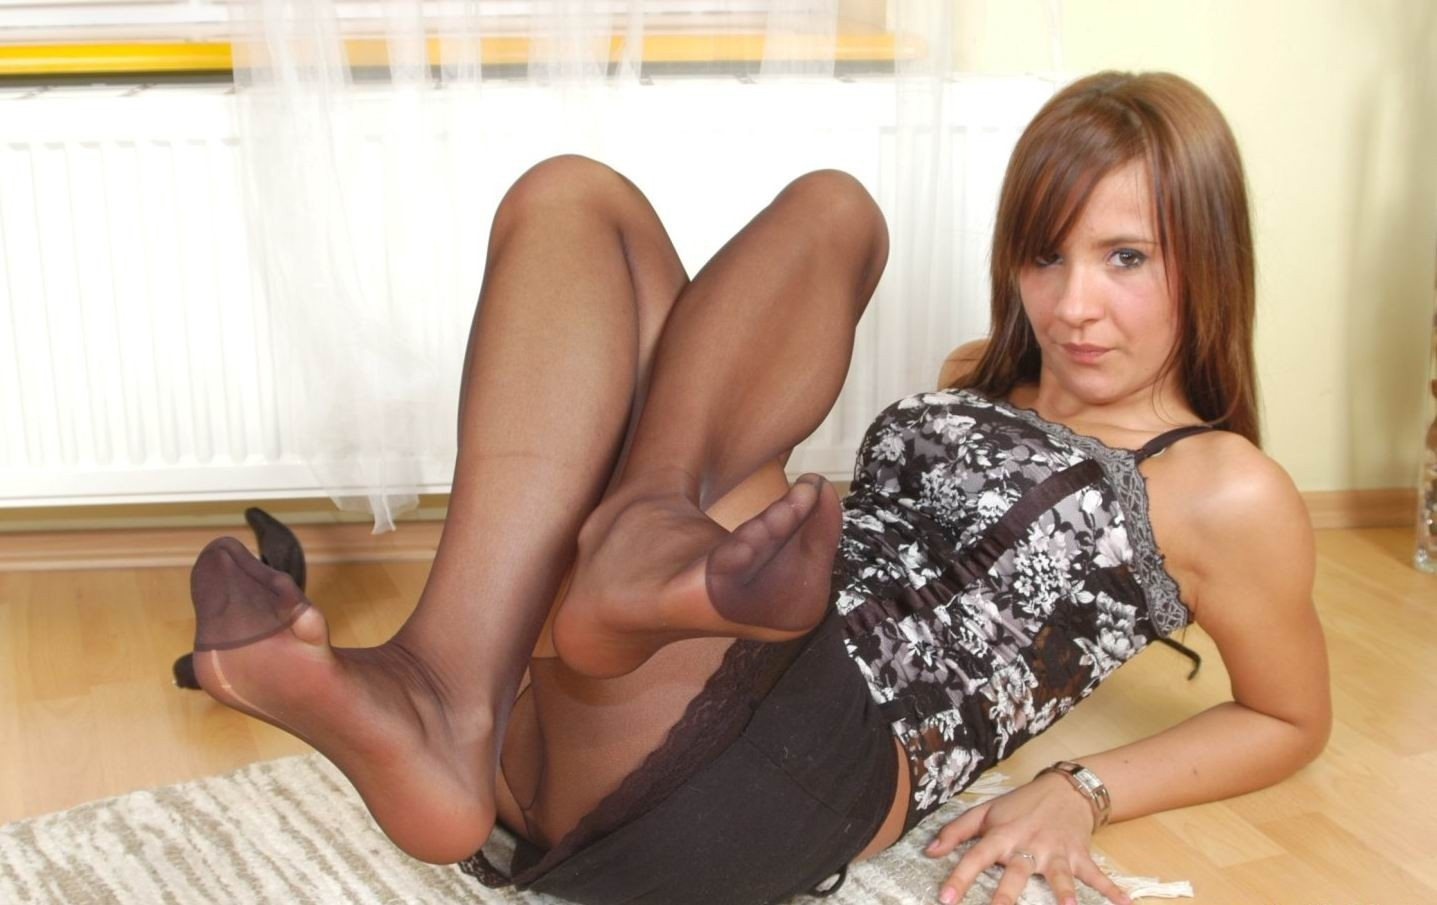 Video! Thanks Pantyhose foot sex videos body this